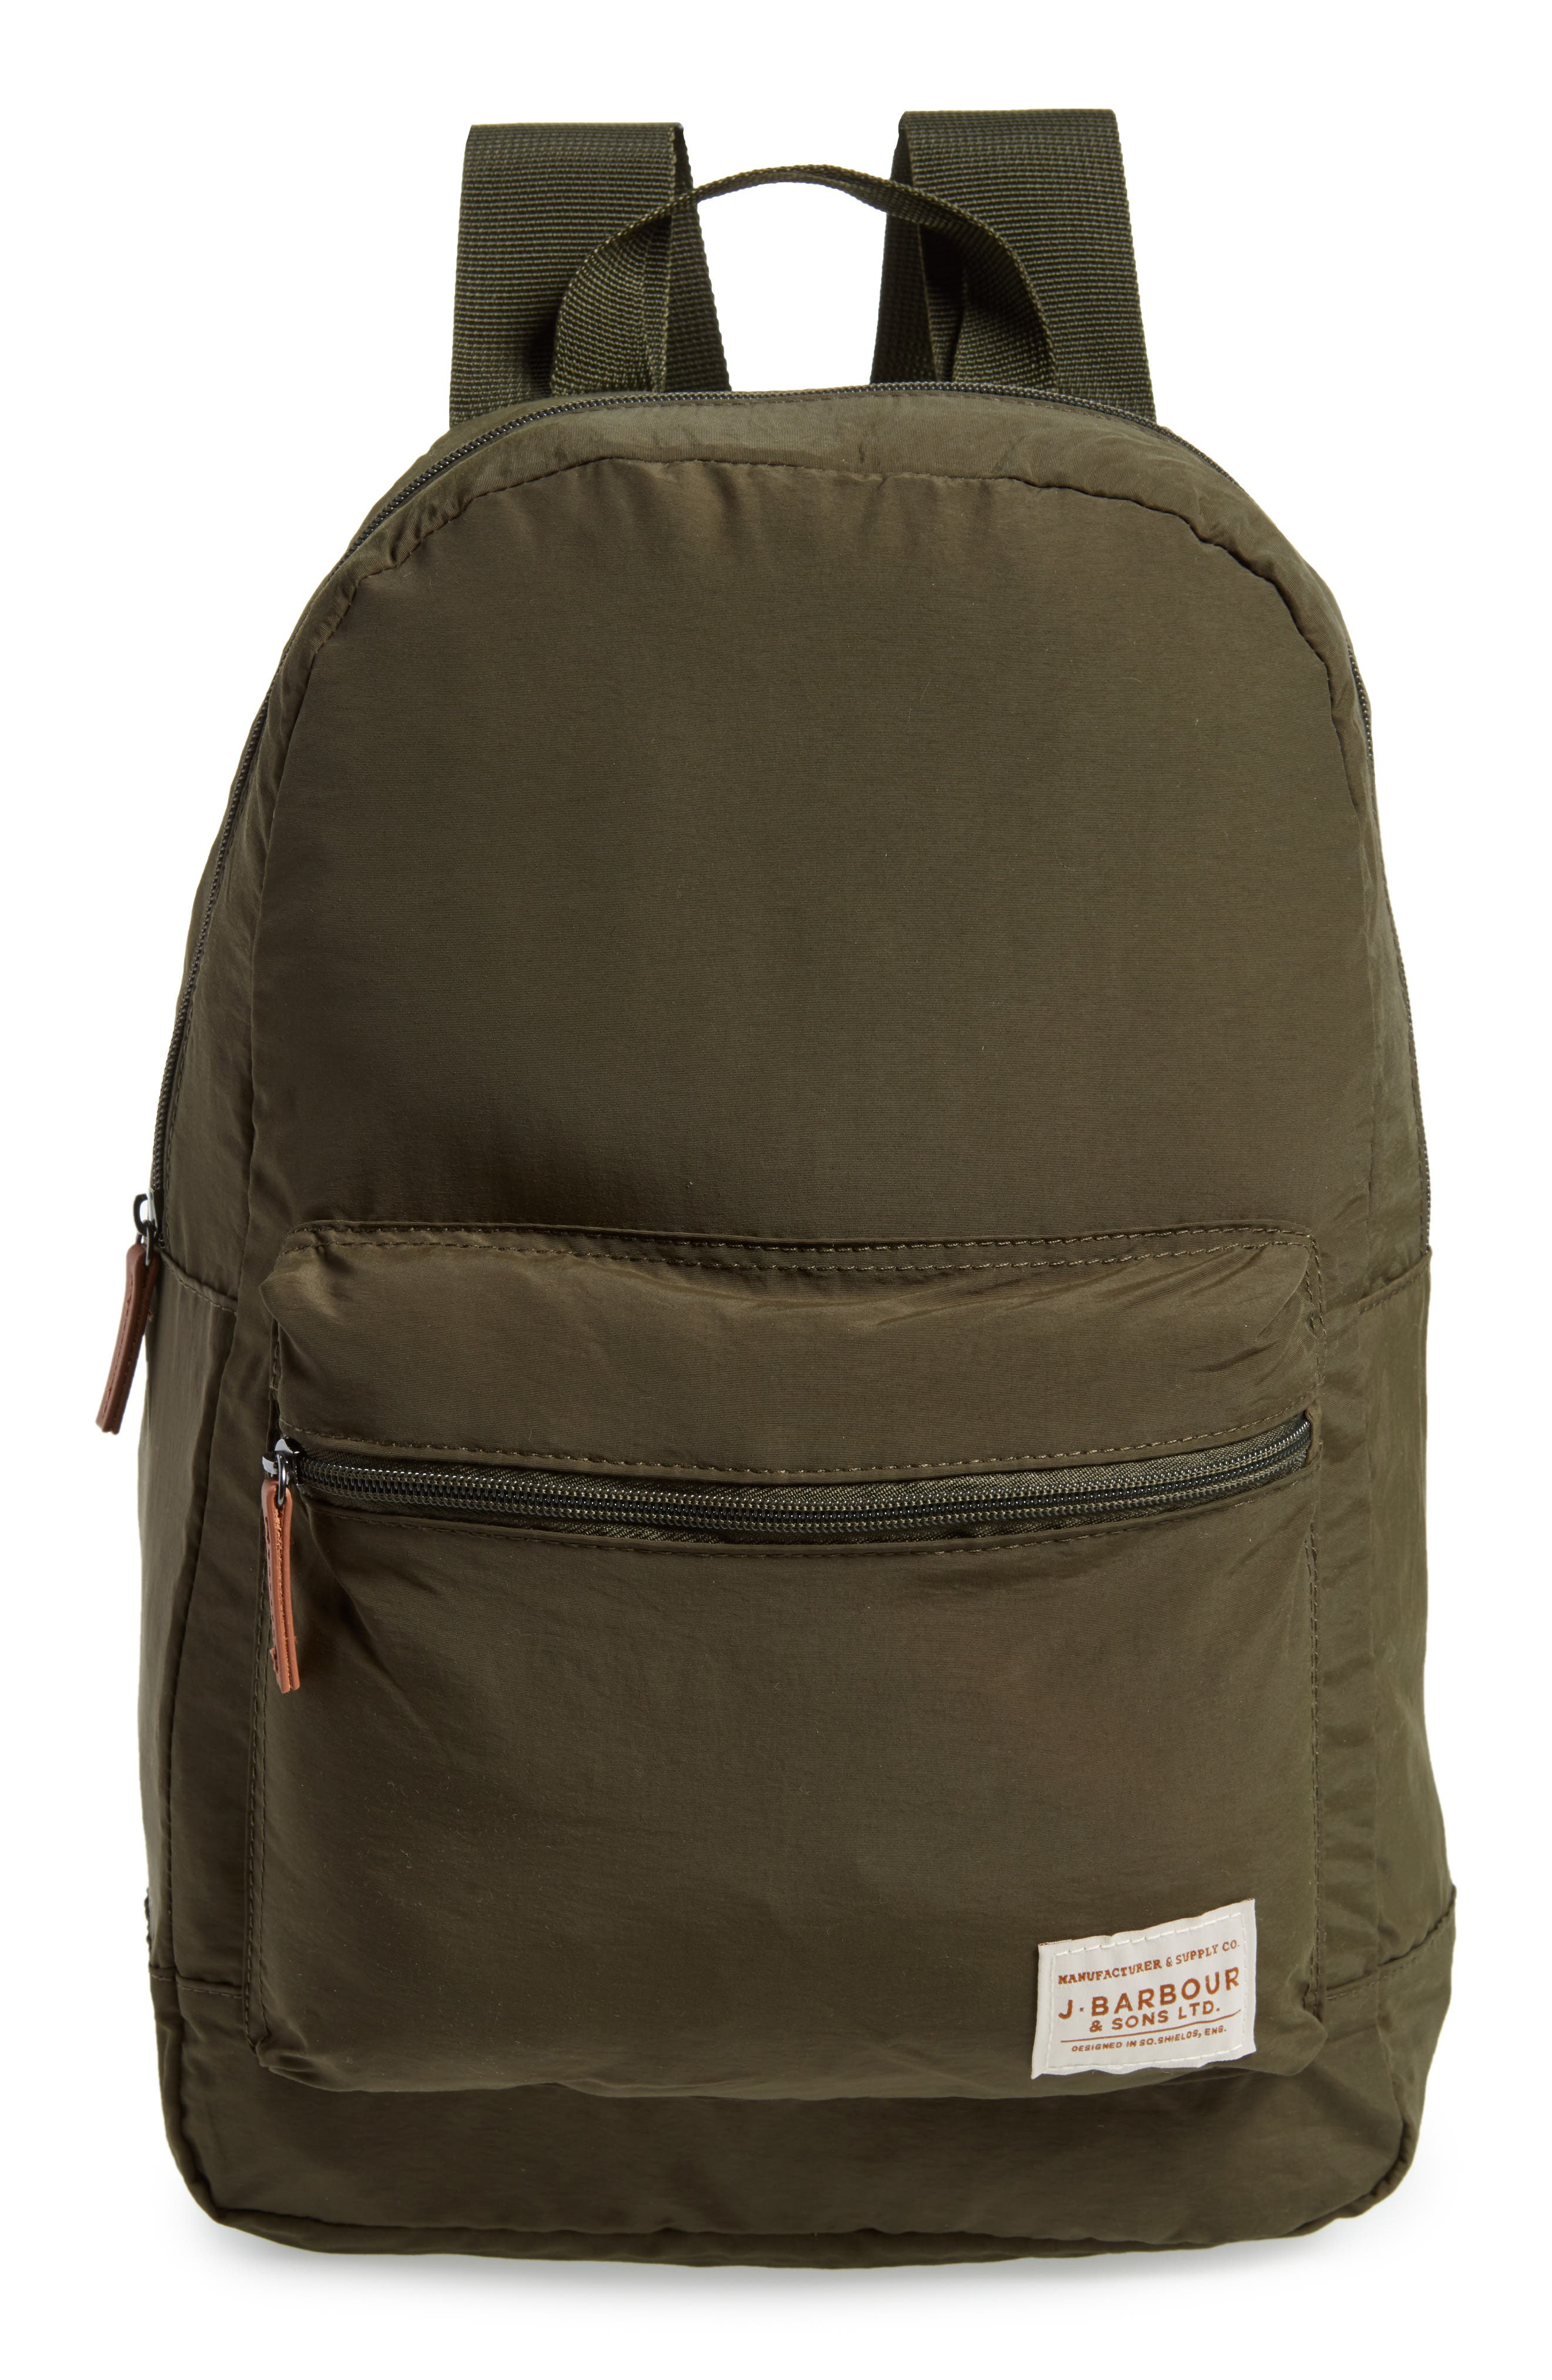 BARBOUR, Beauly Packable Backpack, Main thumbnail 1, color, DARK GREEN